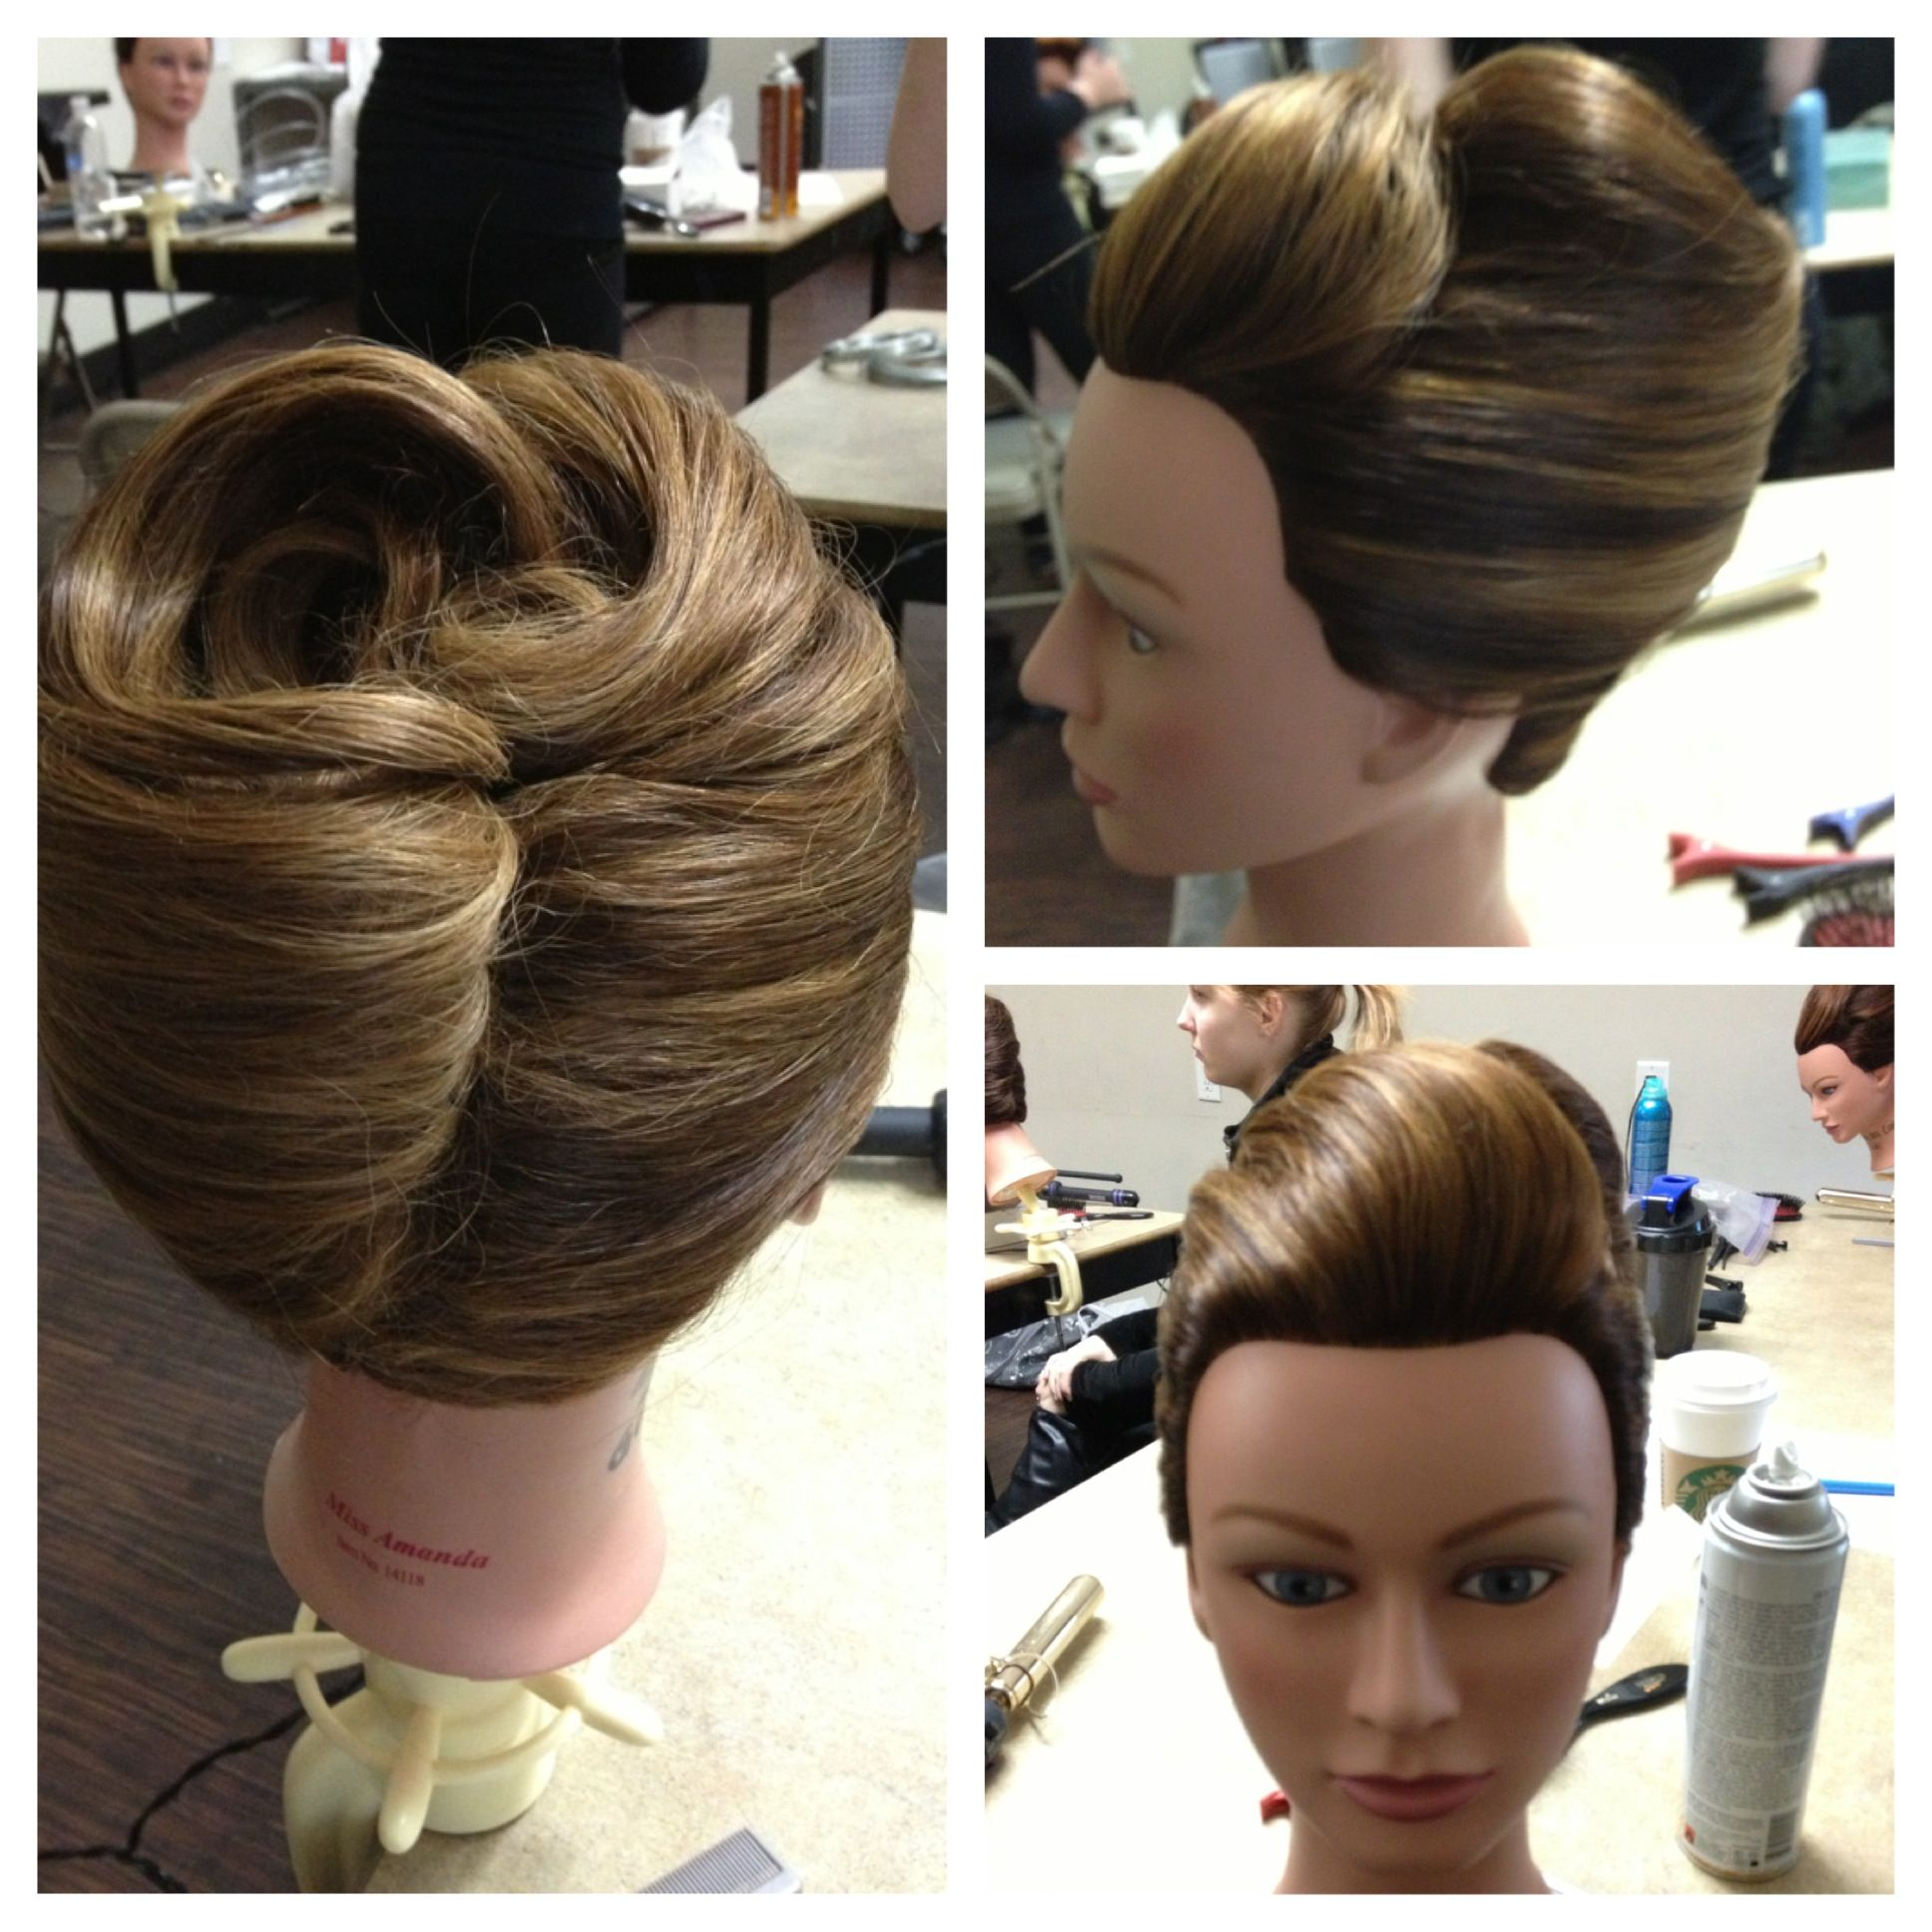 Hairstyle Girl French Roll: Classic French Roll Updo #frenchroll #updo In 2019